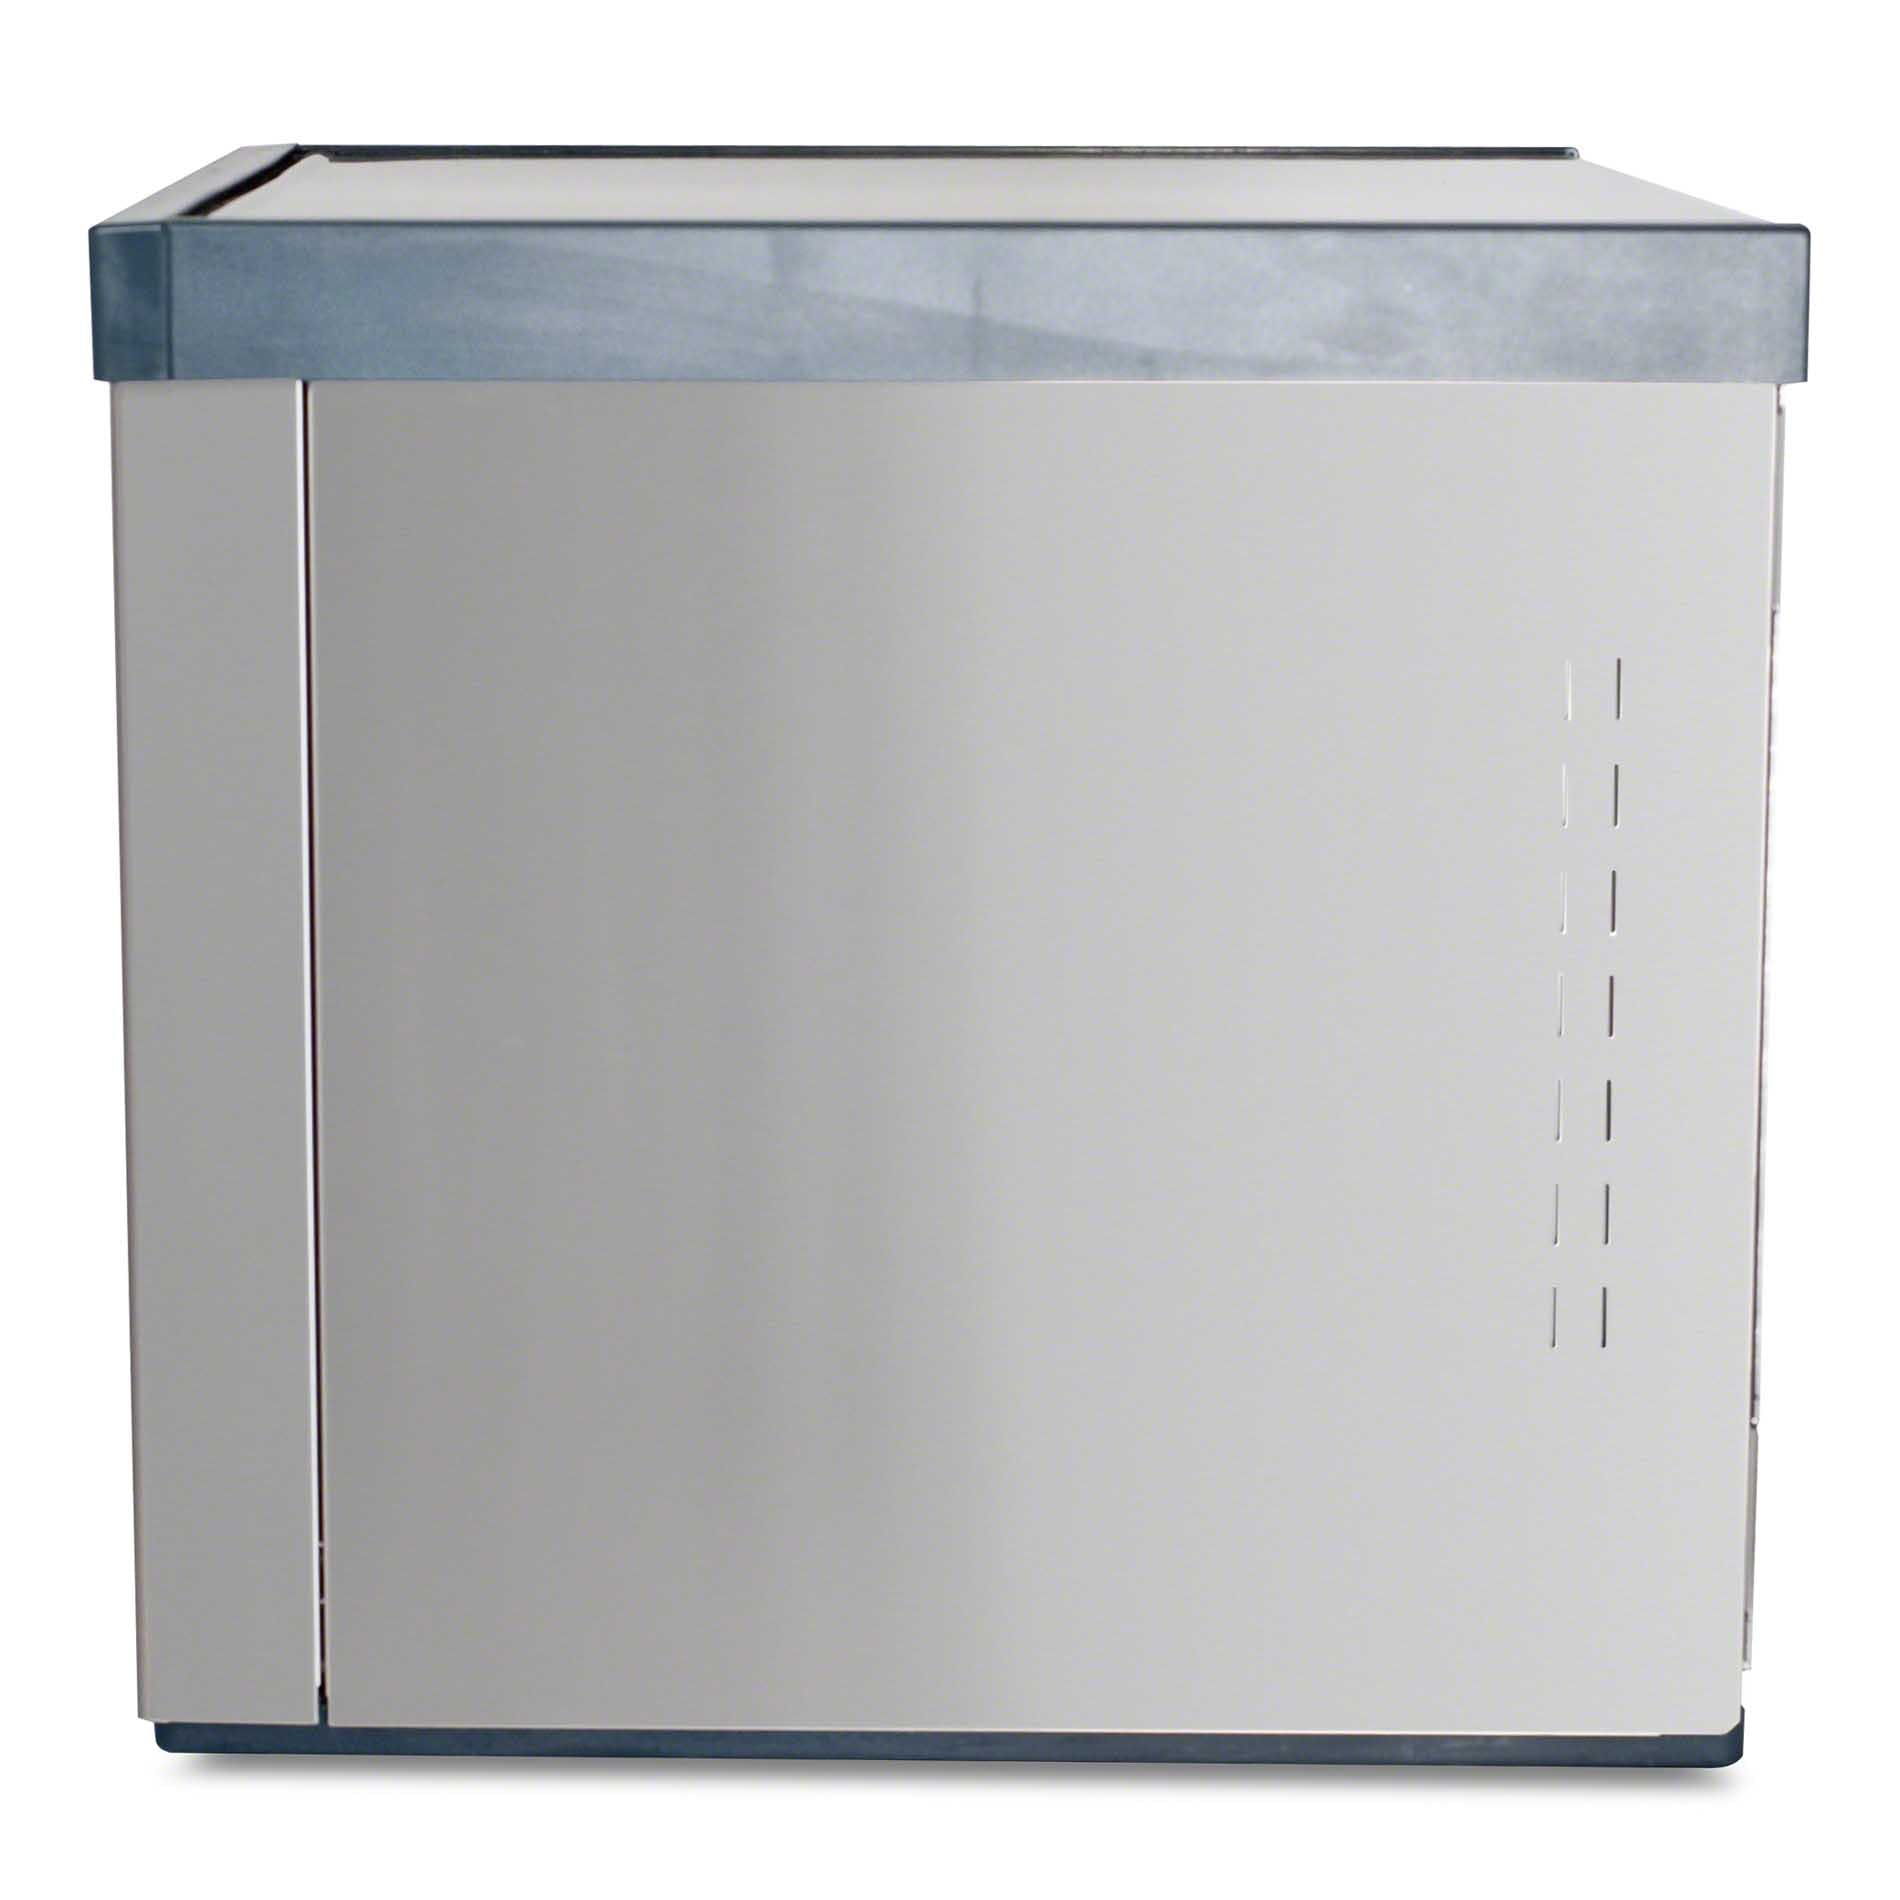 Scotsman - C0630SR-32A 684 lb Half Size Cube Ice Machine - Prodigy Series Ice machine sold by Food Service Warehouse